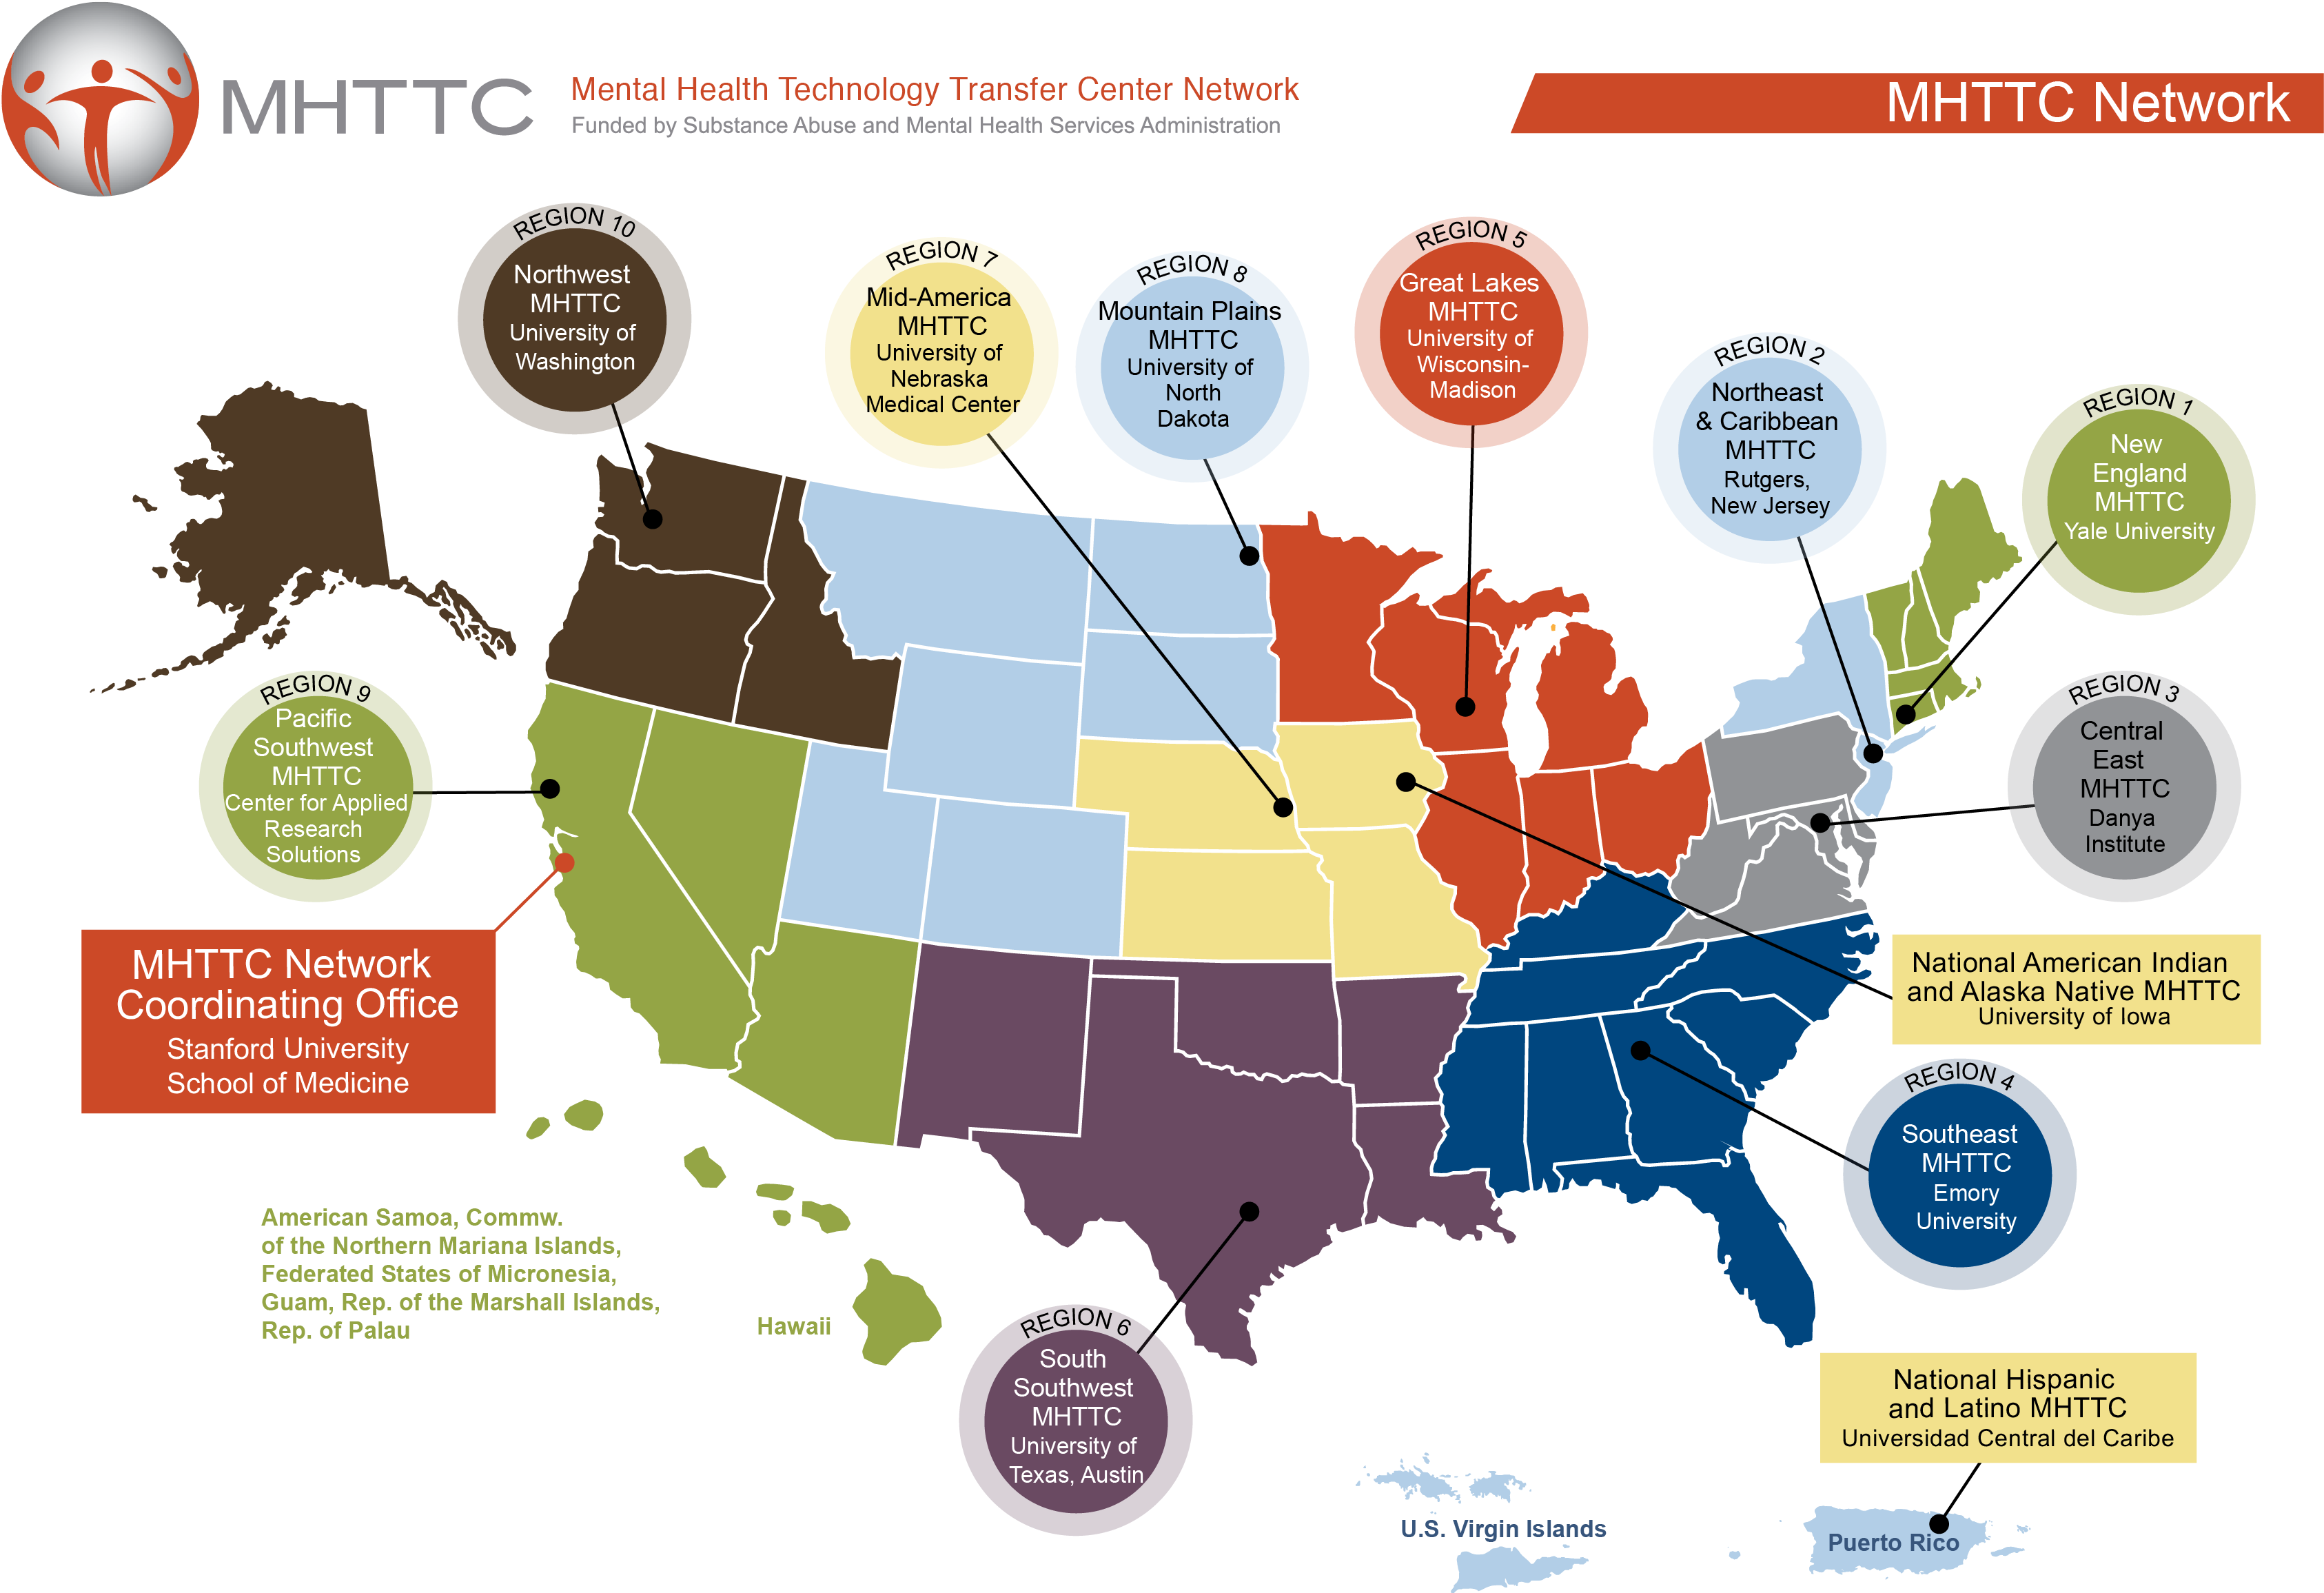 National Helpline Samhsa Substance Abuse And Mental Health >> About The Mhttc Network Mental Health Technology Transfer Center